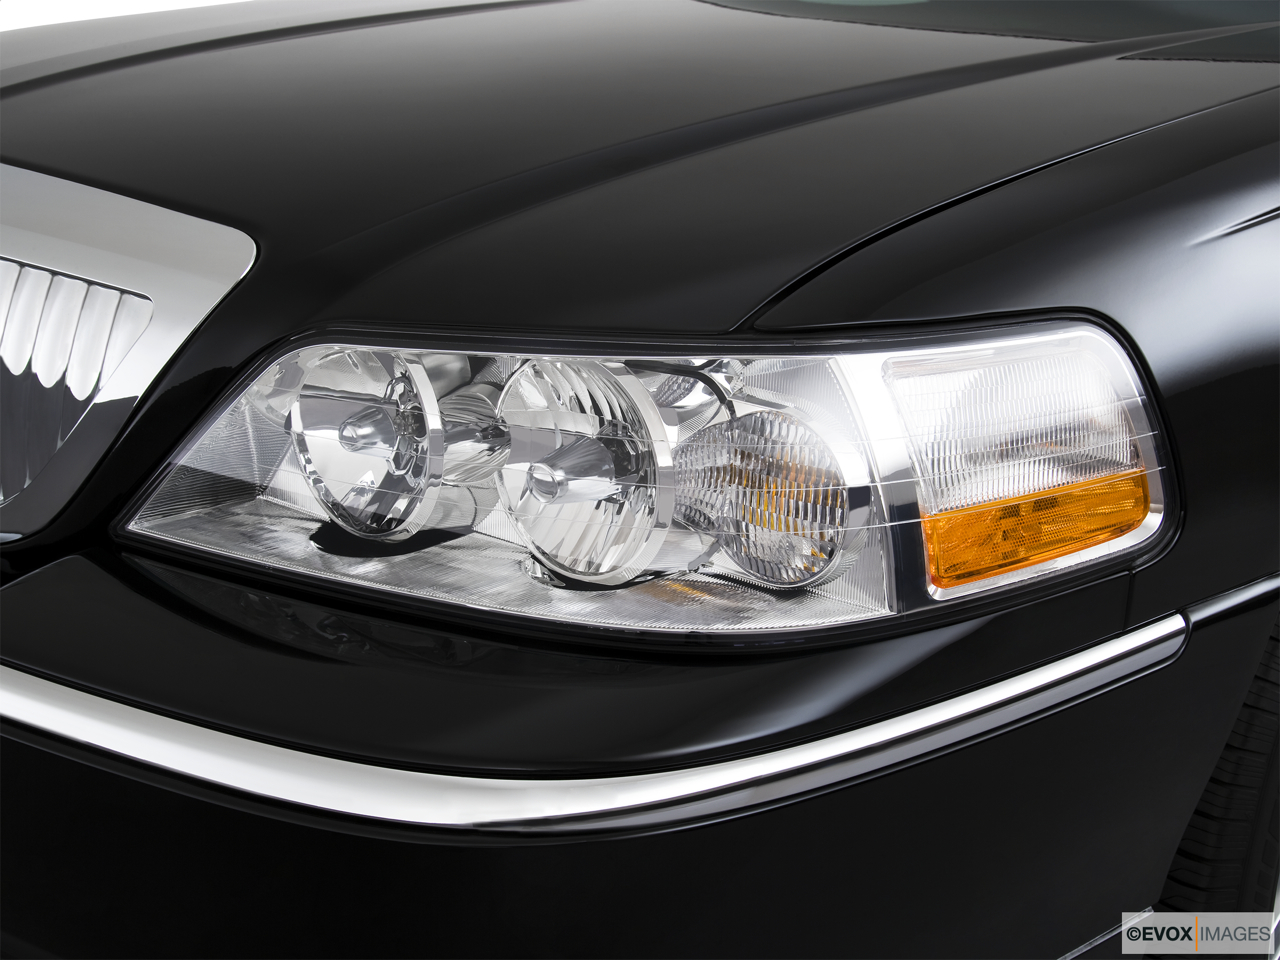 2010 Lincoln Town Car Signature L Drivers Side Headlight.